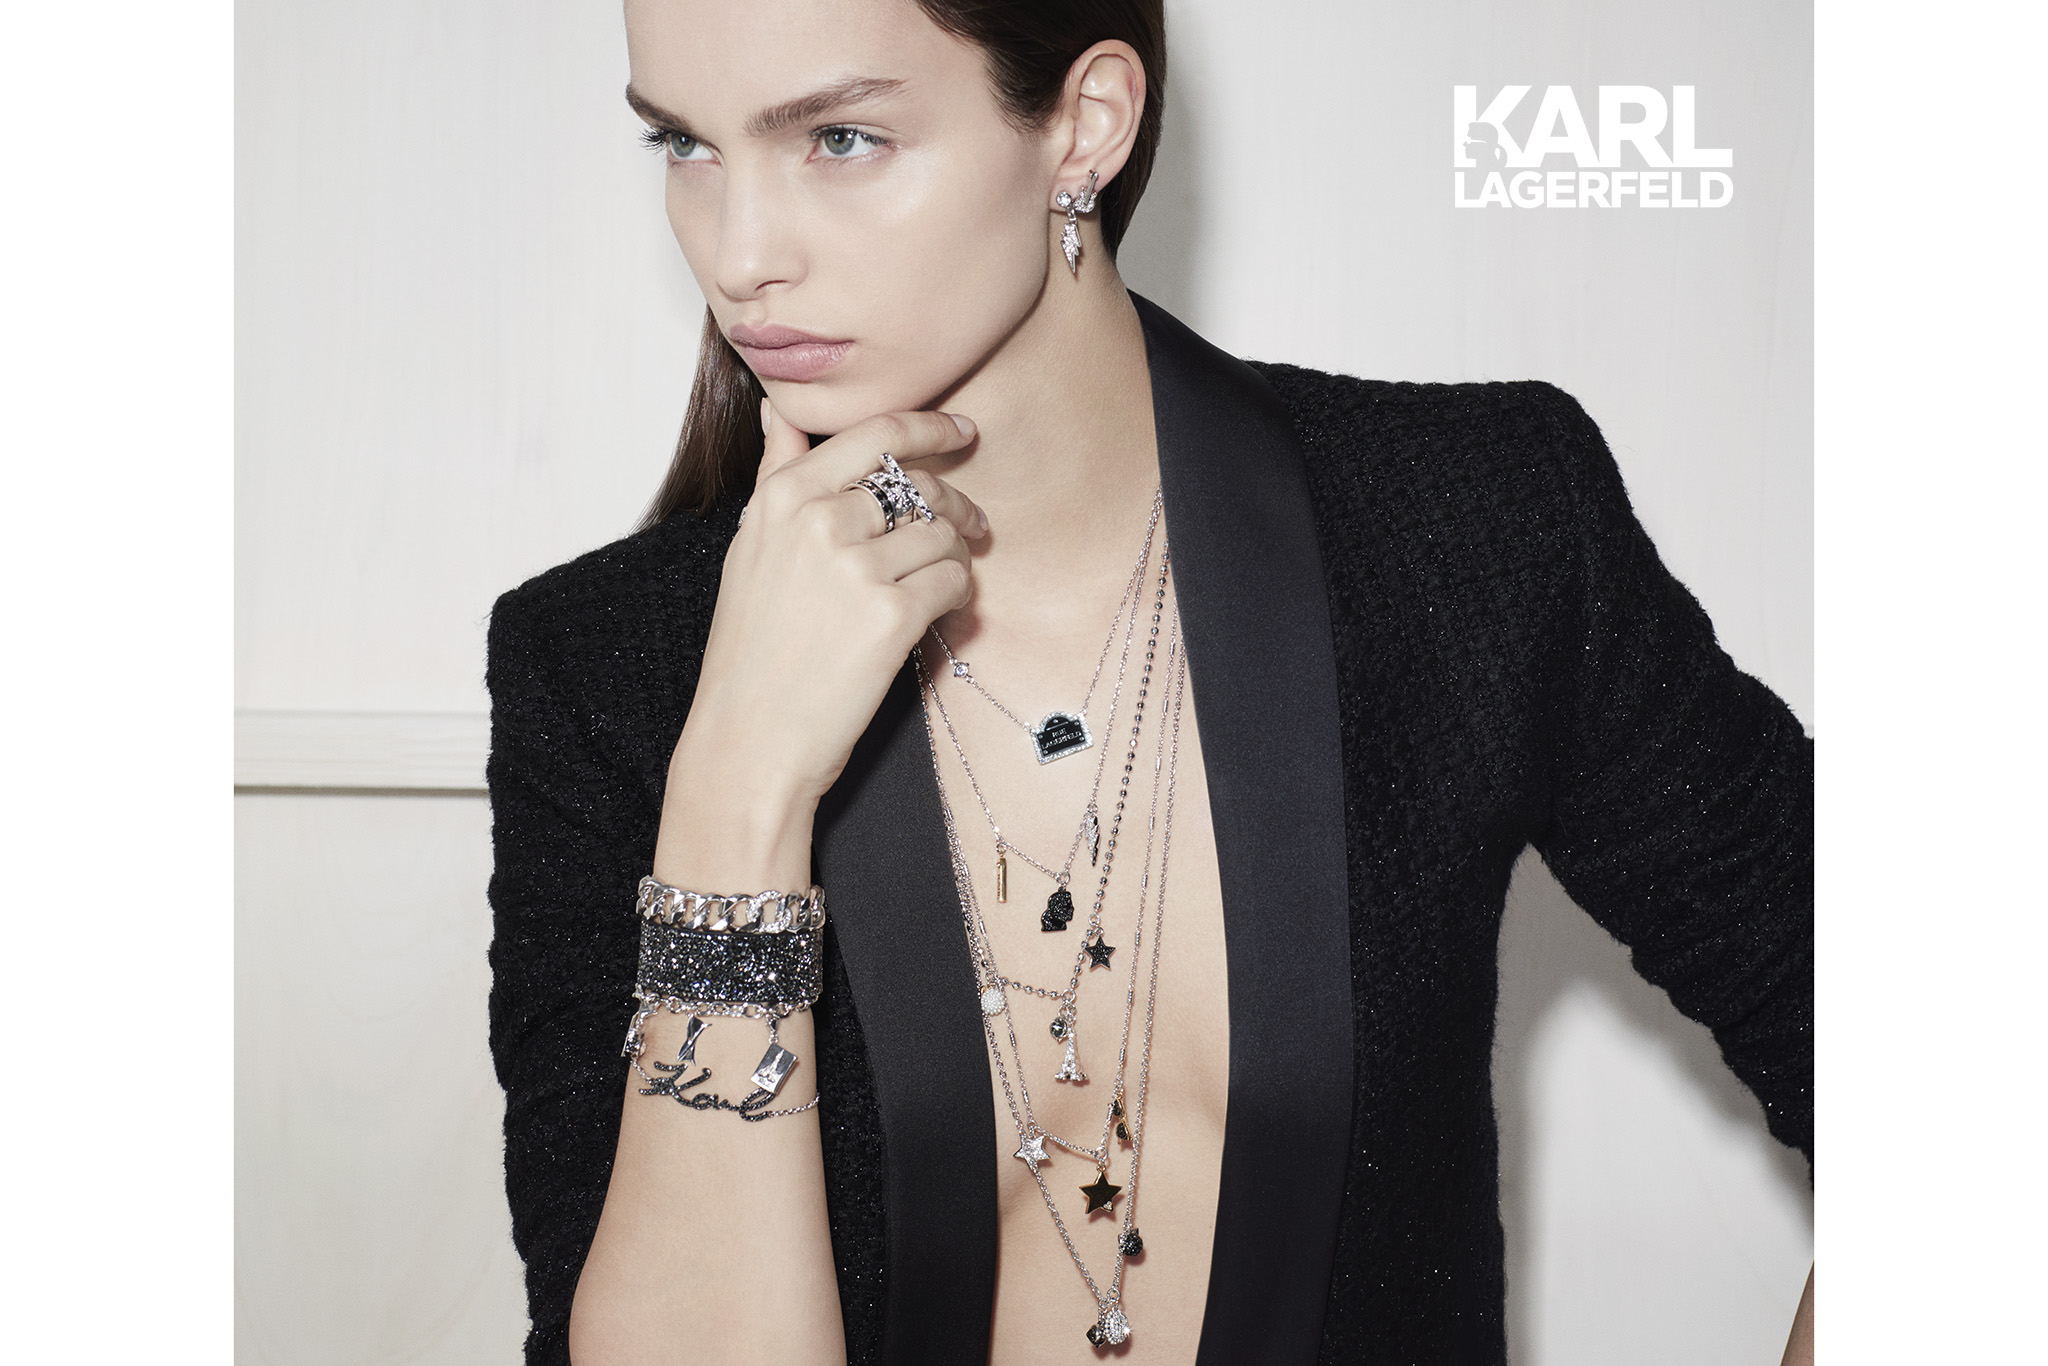 Karl Lagerfeld's first collection for Swarovski